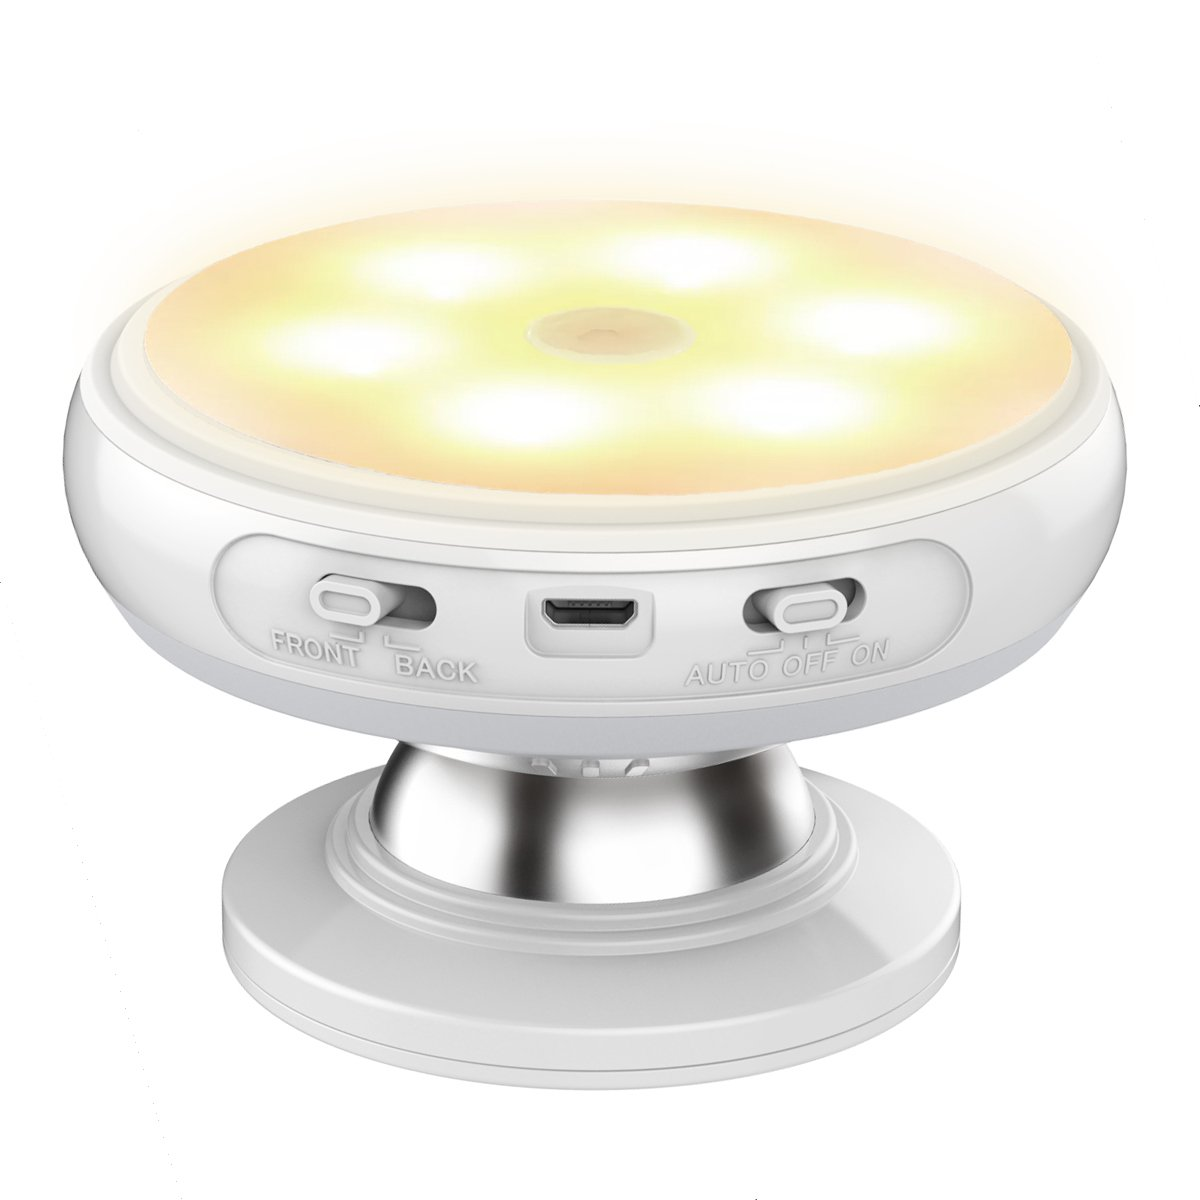 nycooモーションセンサーワイヤレス360度回転バッテリ電源/充電式LED夜間Cold Warmライトキッチン、廊下、階段、クローゼット、最適など。 B077JMQ6KR 14181 Warm-rechargeable Type Warmrechargeable Type